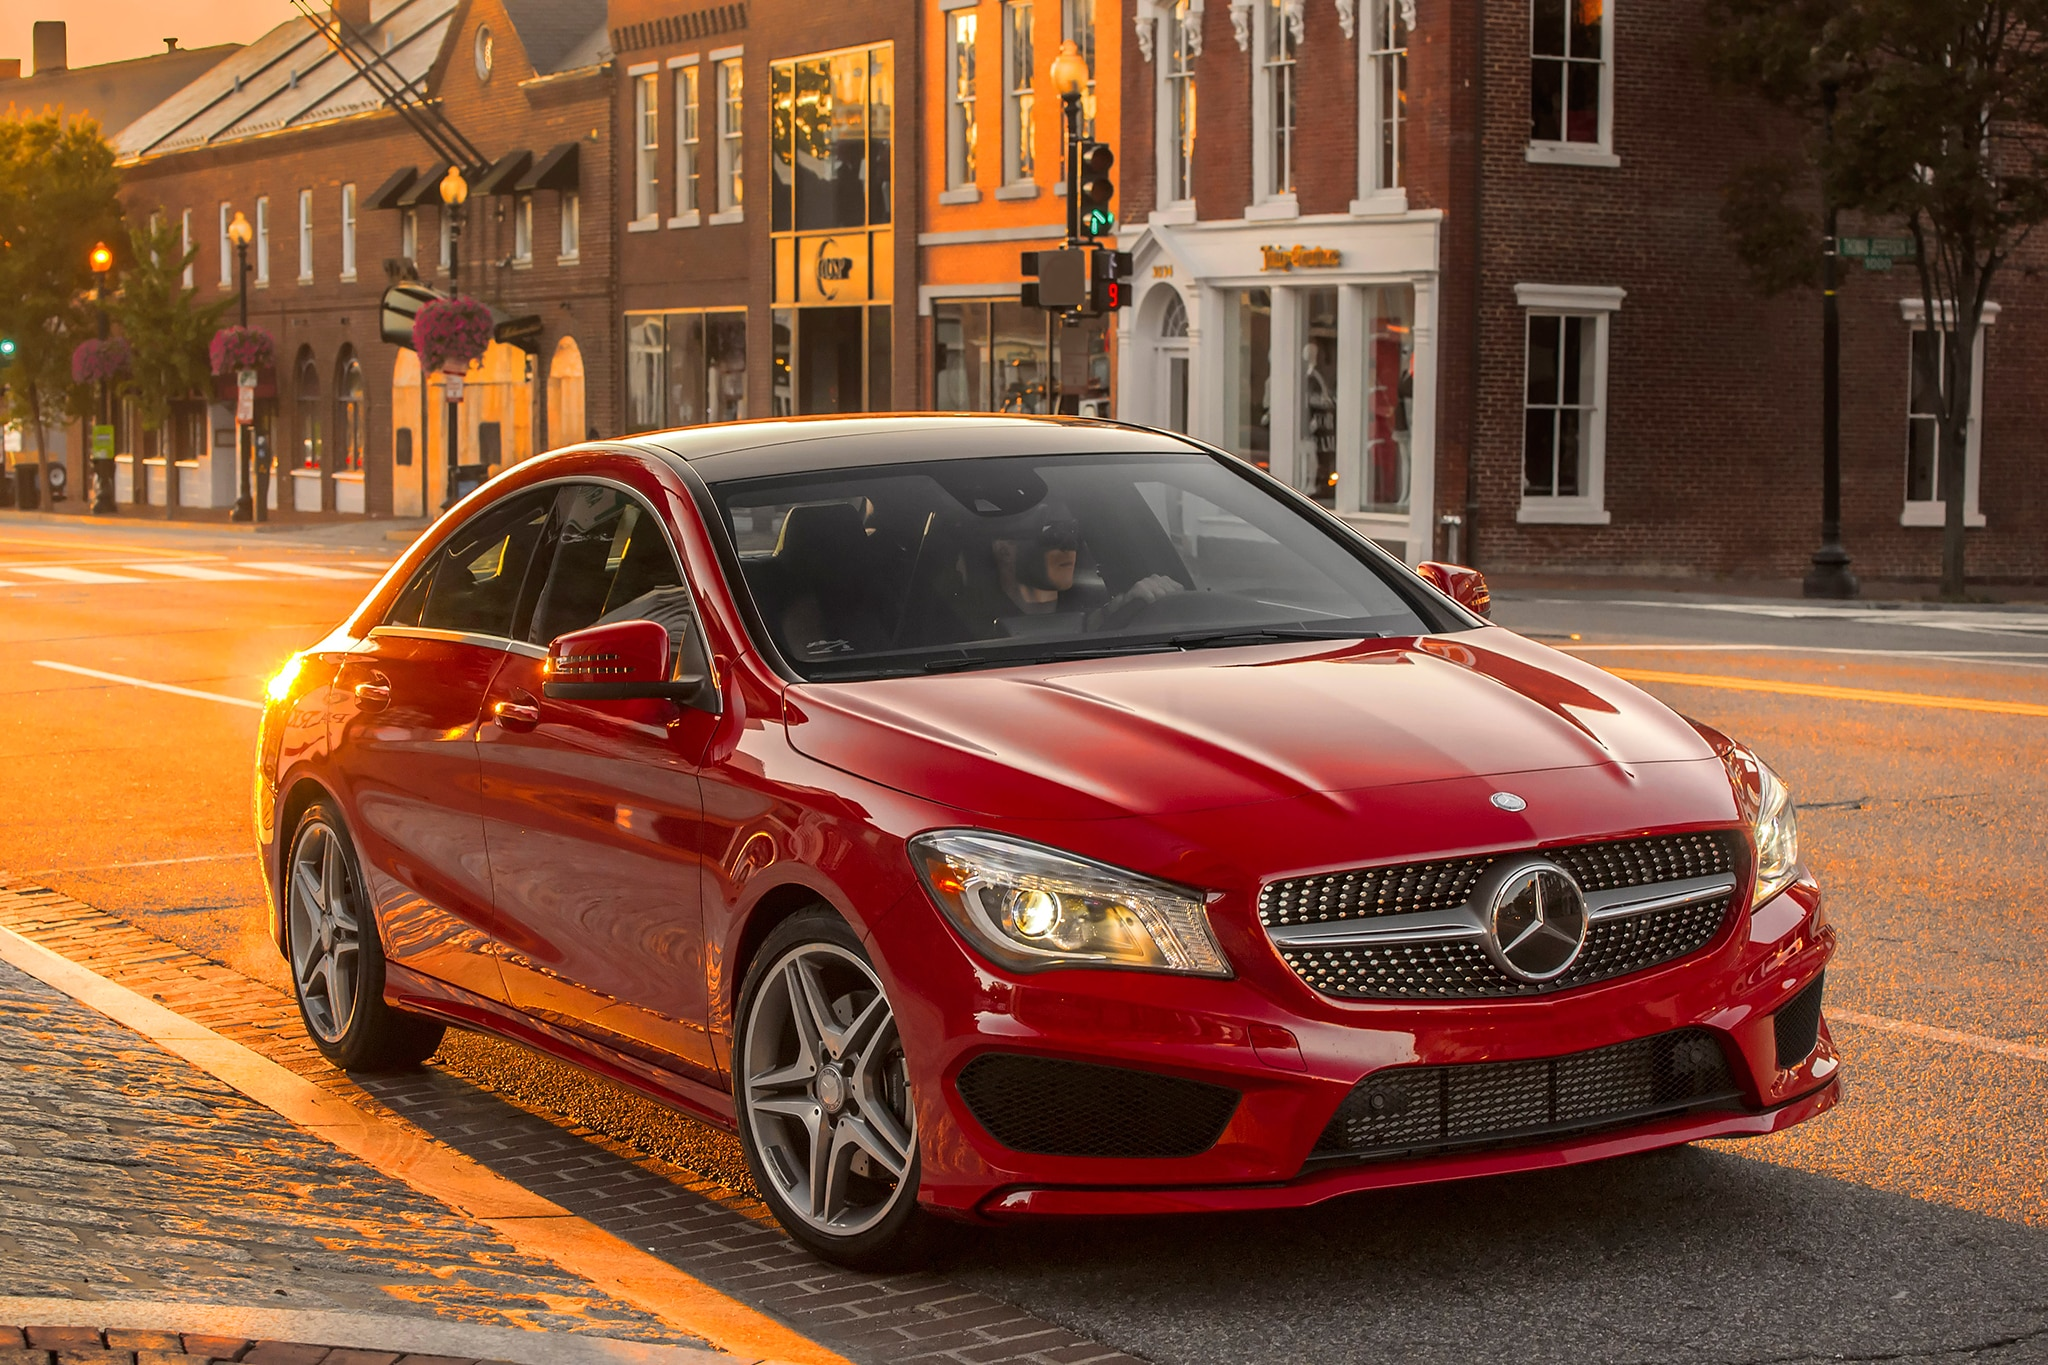 2015 Mercedes Benz Cla Price Increases 1 600 To 32 425